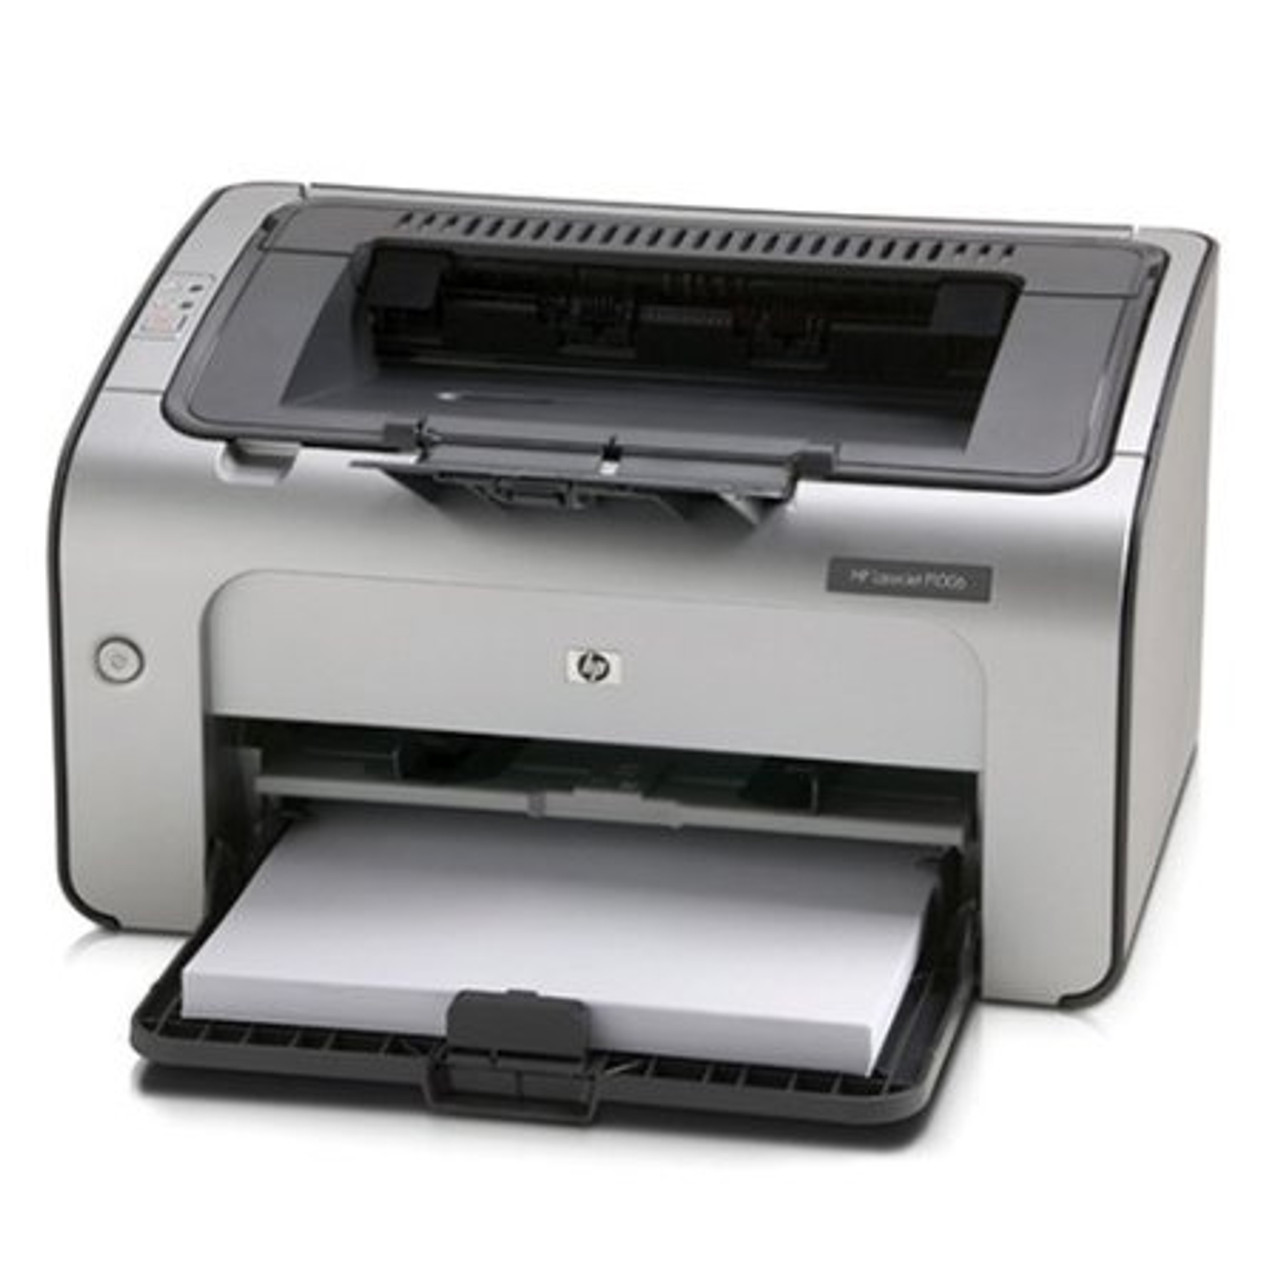 HP LaserJet P1006 - CB411A#ABA  - HP Laser Printer for sale